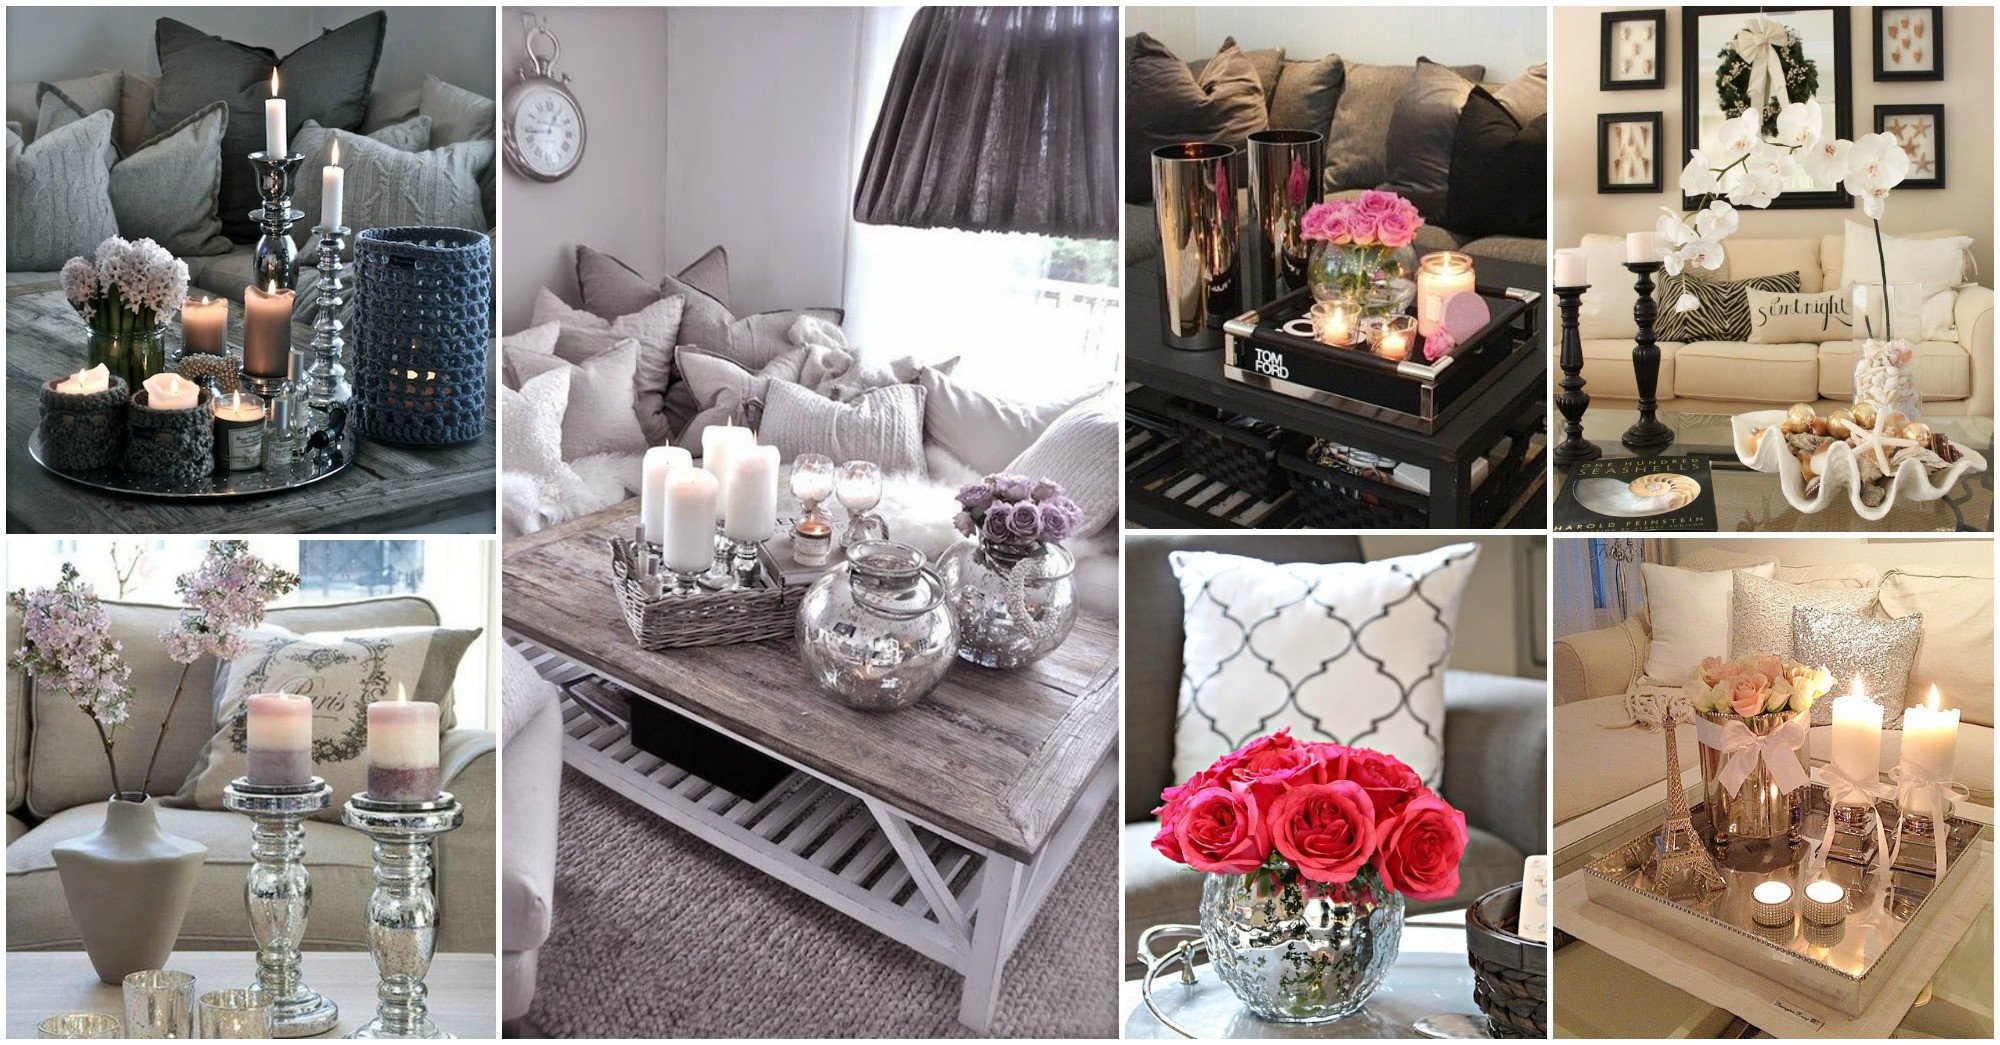 Table Decorating Ideas Living Room Lovely 20 Super Modern Living Room Coffee Table Decor Ideas that Will Amaze You